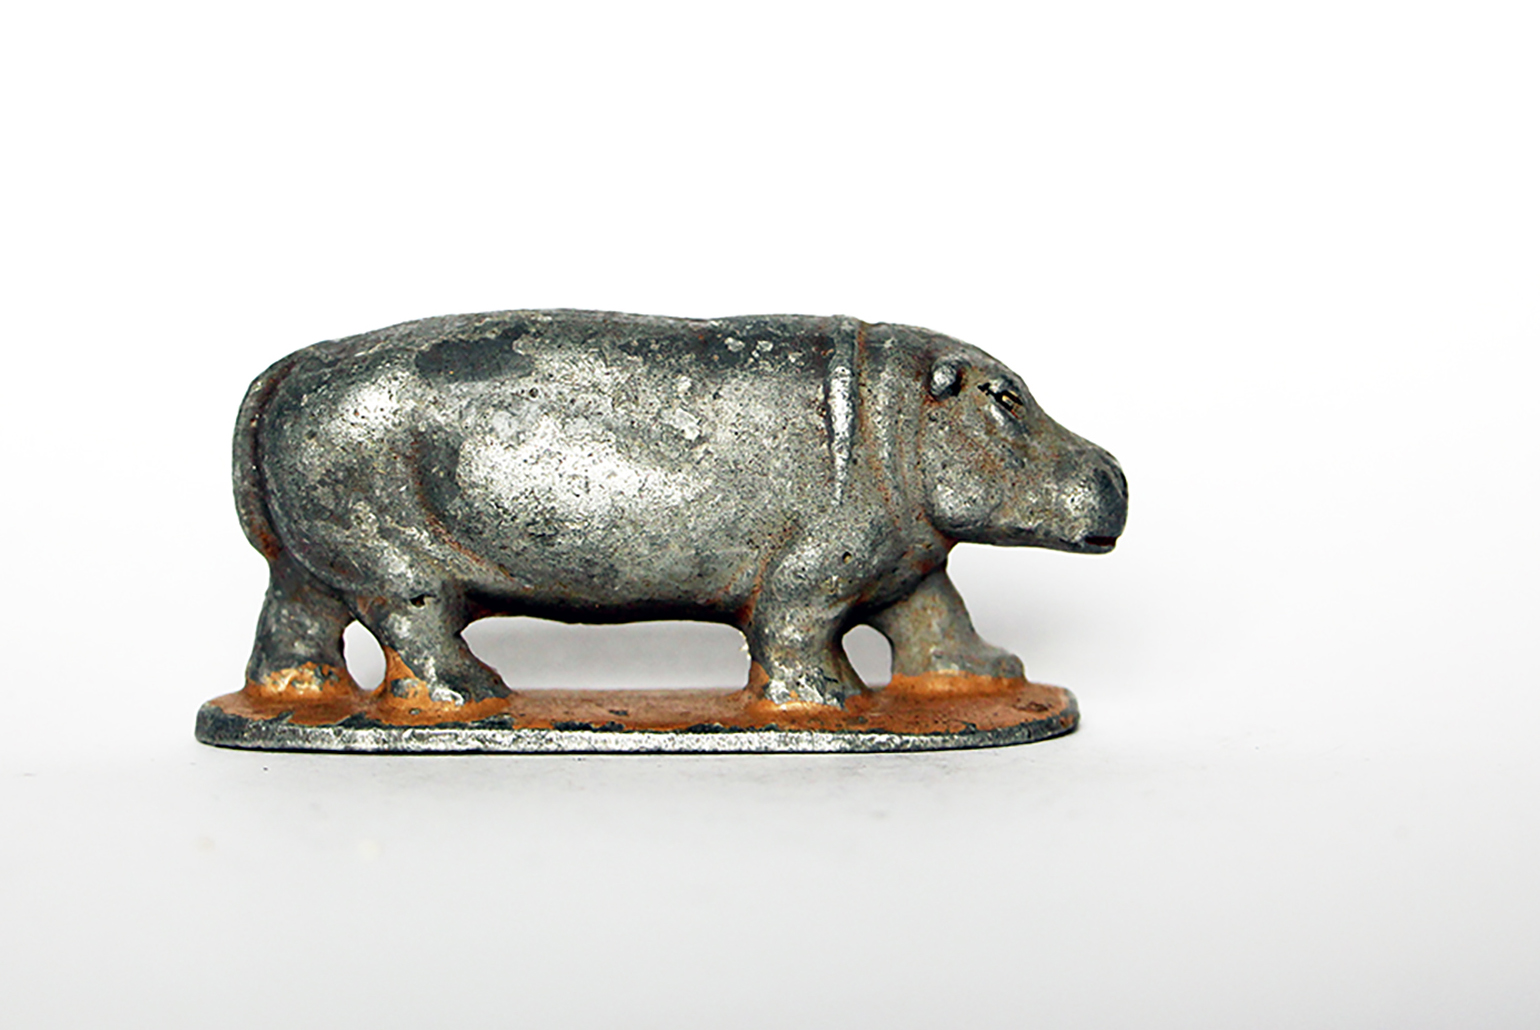 Ancienne Figurine Quiralu année 50/60 - Animal Zoo - Hippopotame Afrique